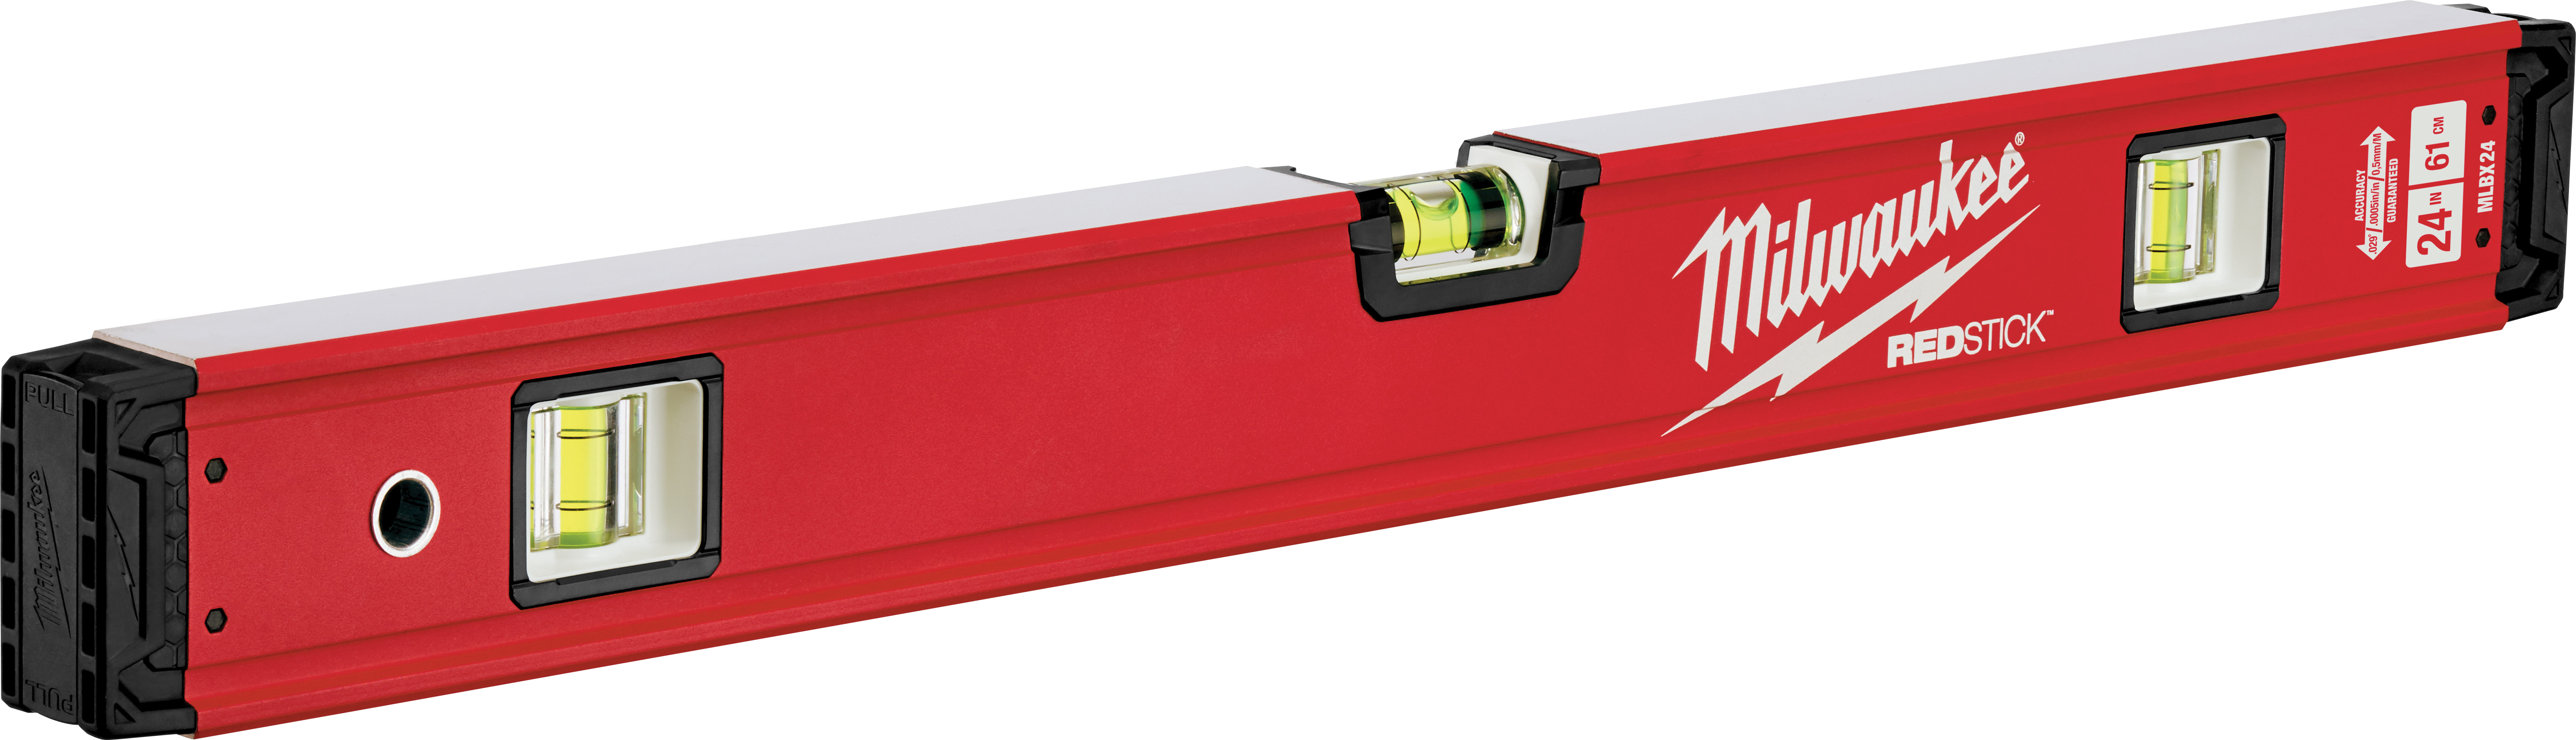 Milwaukee® REDSTICK™ MLBX24 Box Level, 24 in L, 3 Vials, Aluminum, (1) Level, (2) Plumb Vial Position, 0.0005 in/in Accuracy